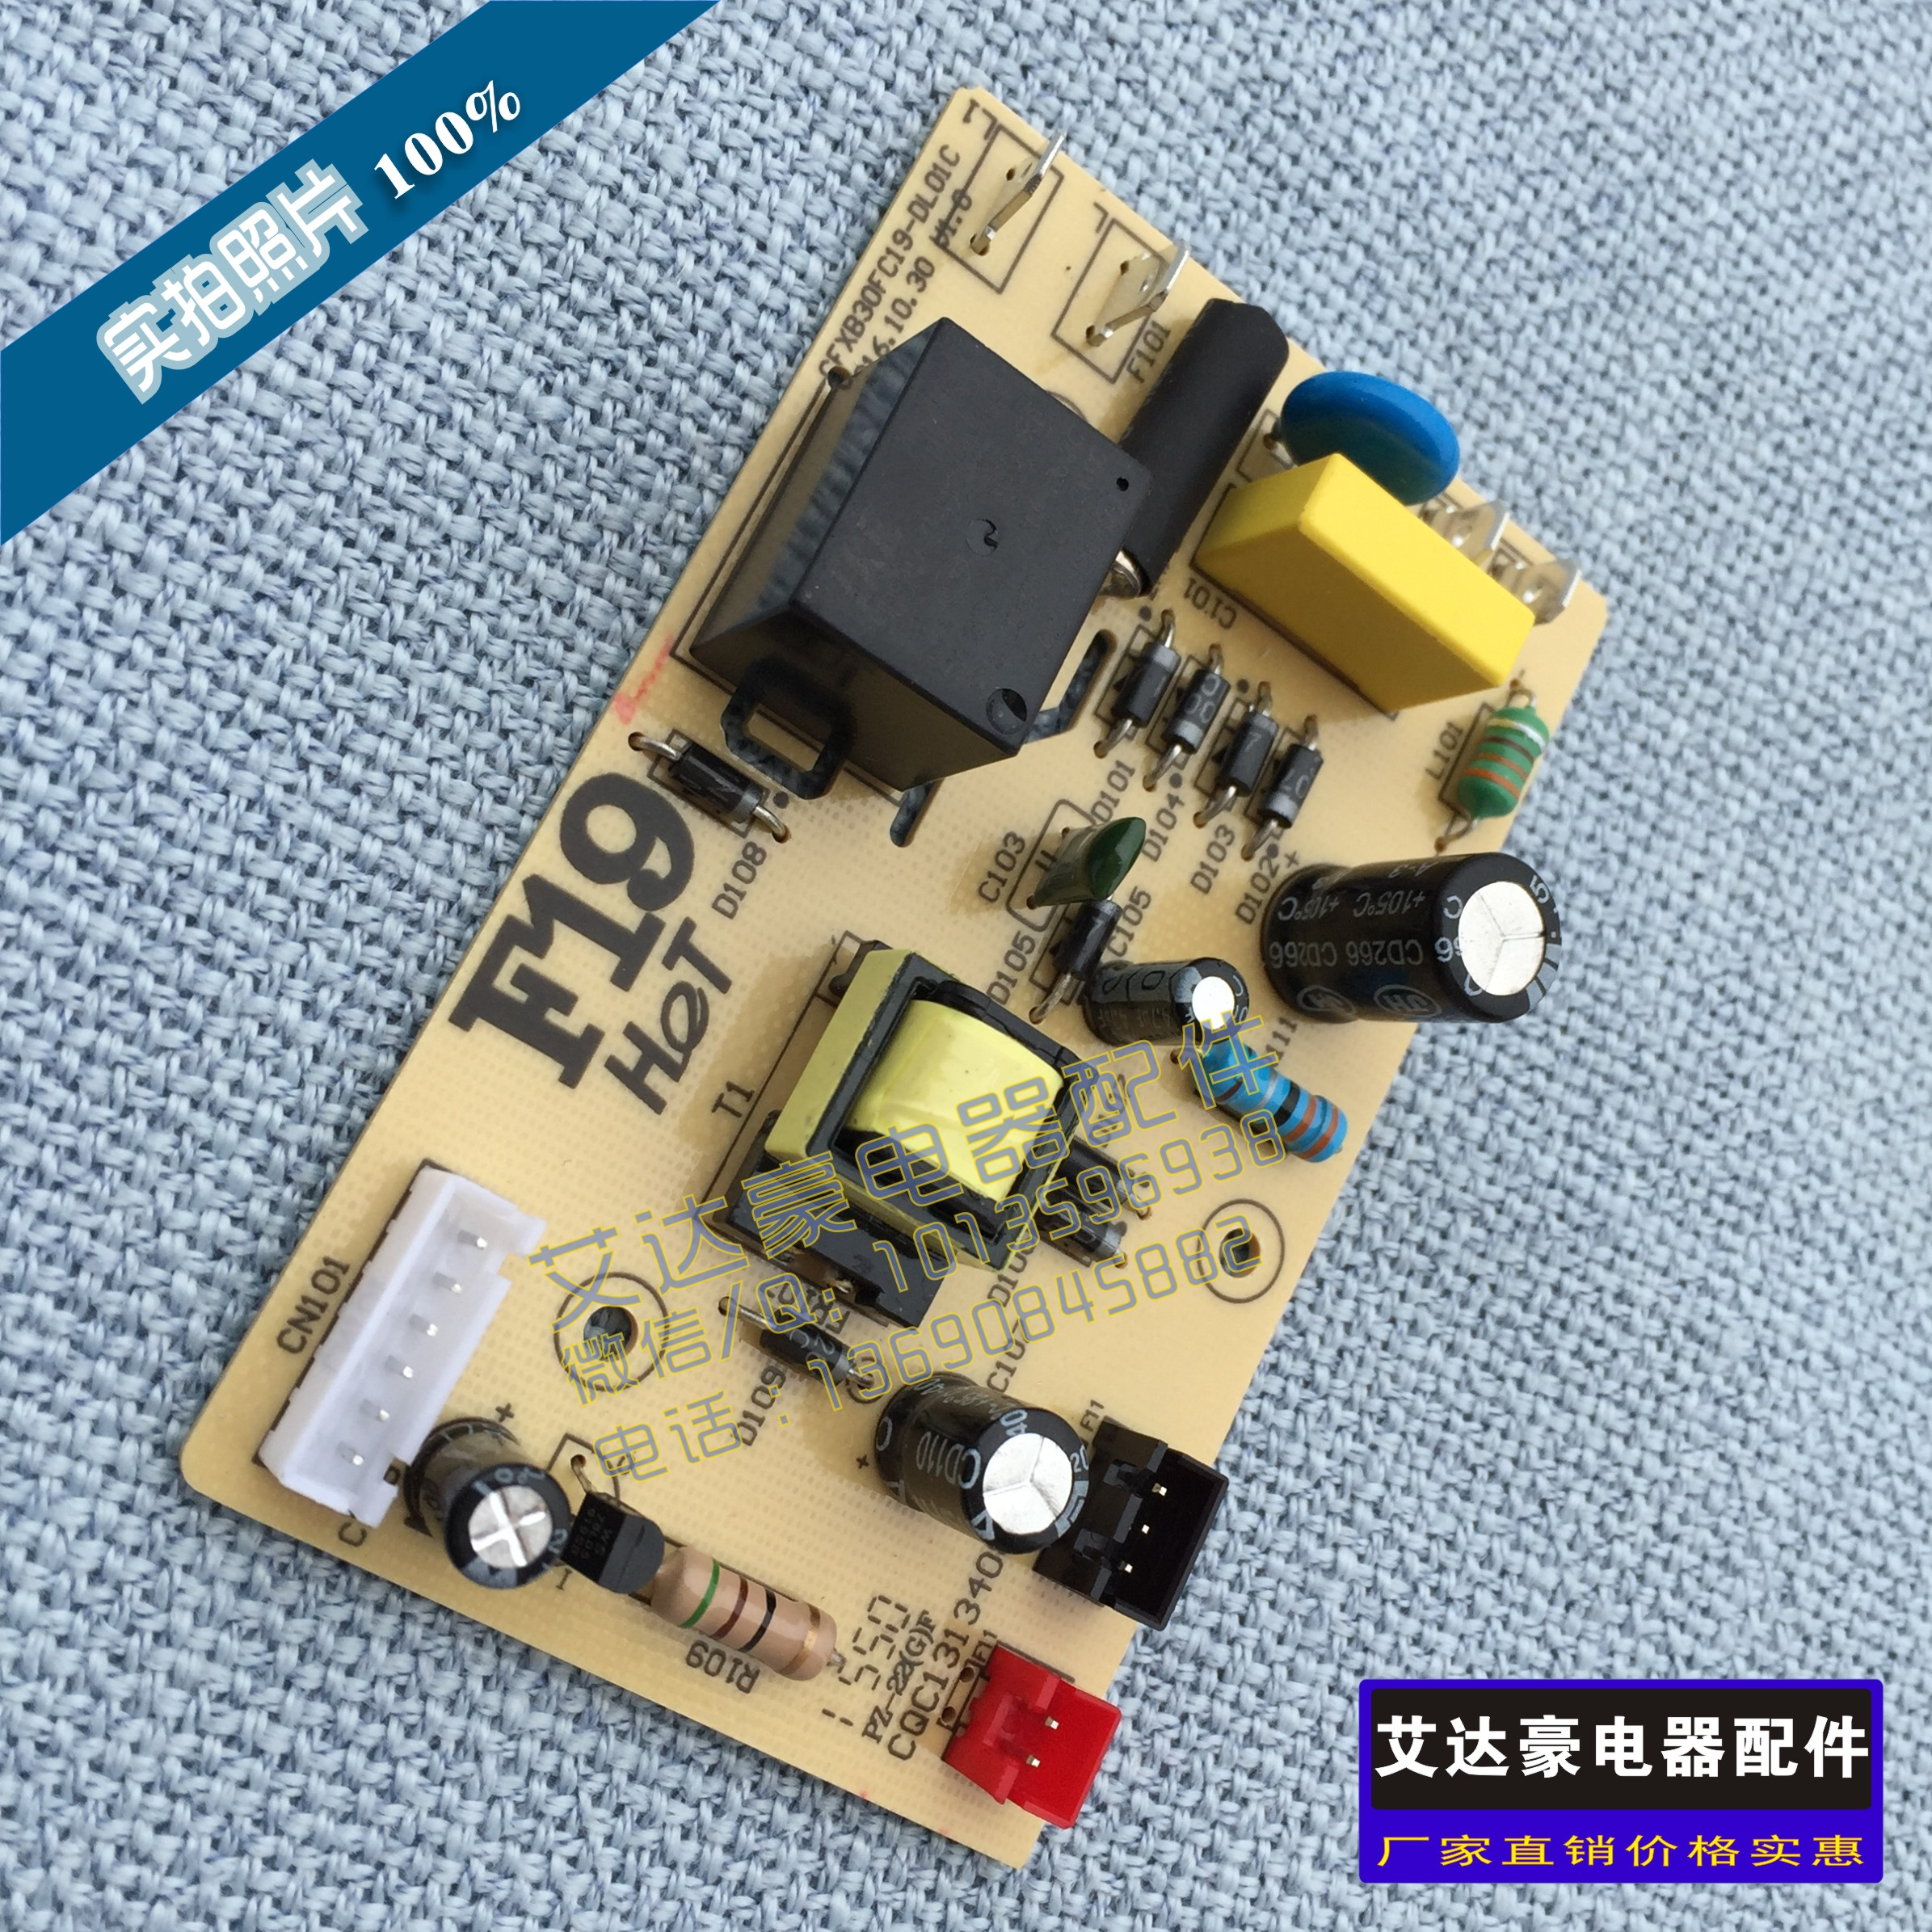 Usd 802 Supor Rice Cooker Power Board Cfxb30fc19 Dl01a Motherboard Circuit C Cooking Timer Lightbox Moreview Prevnext